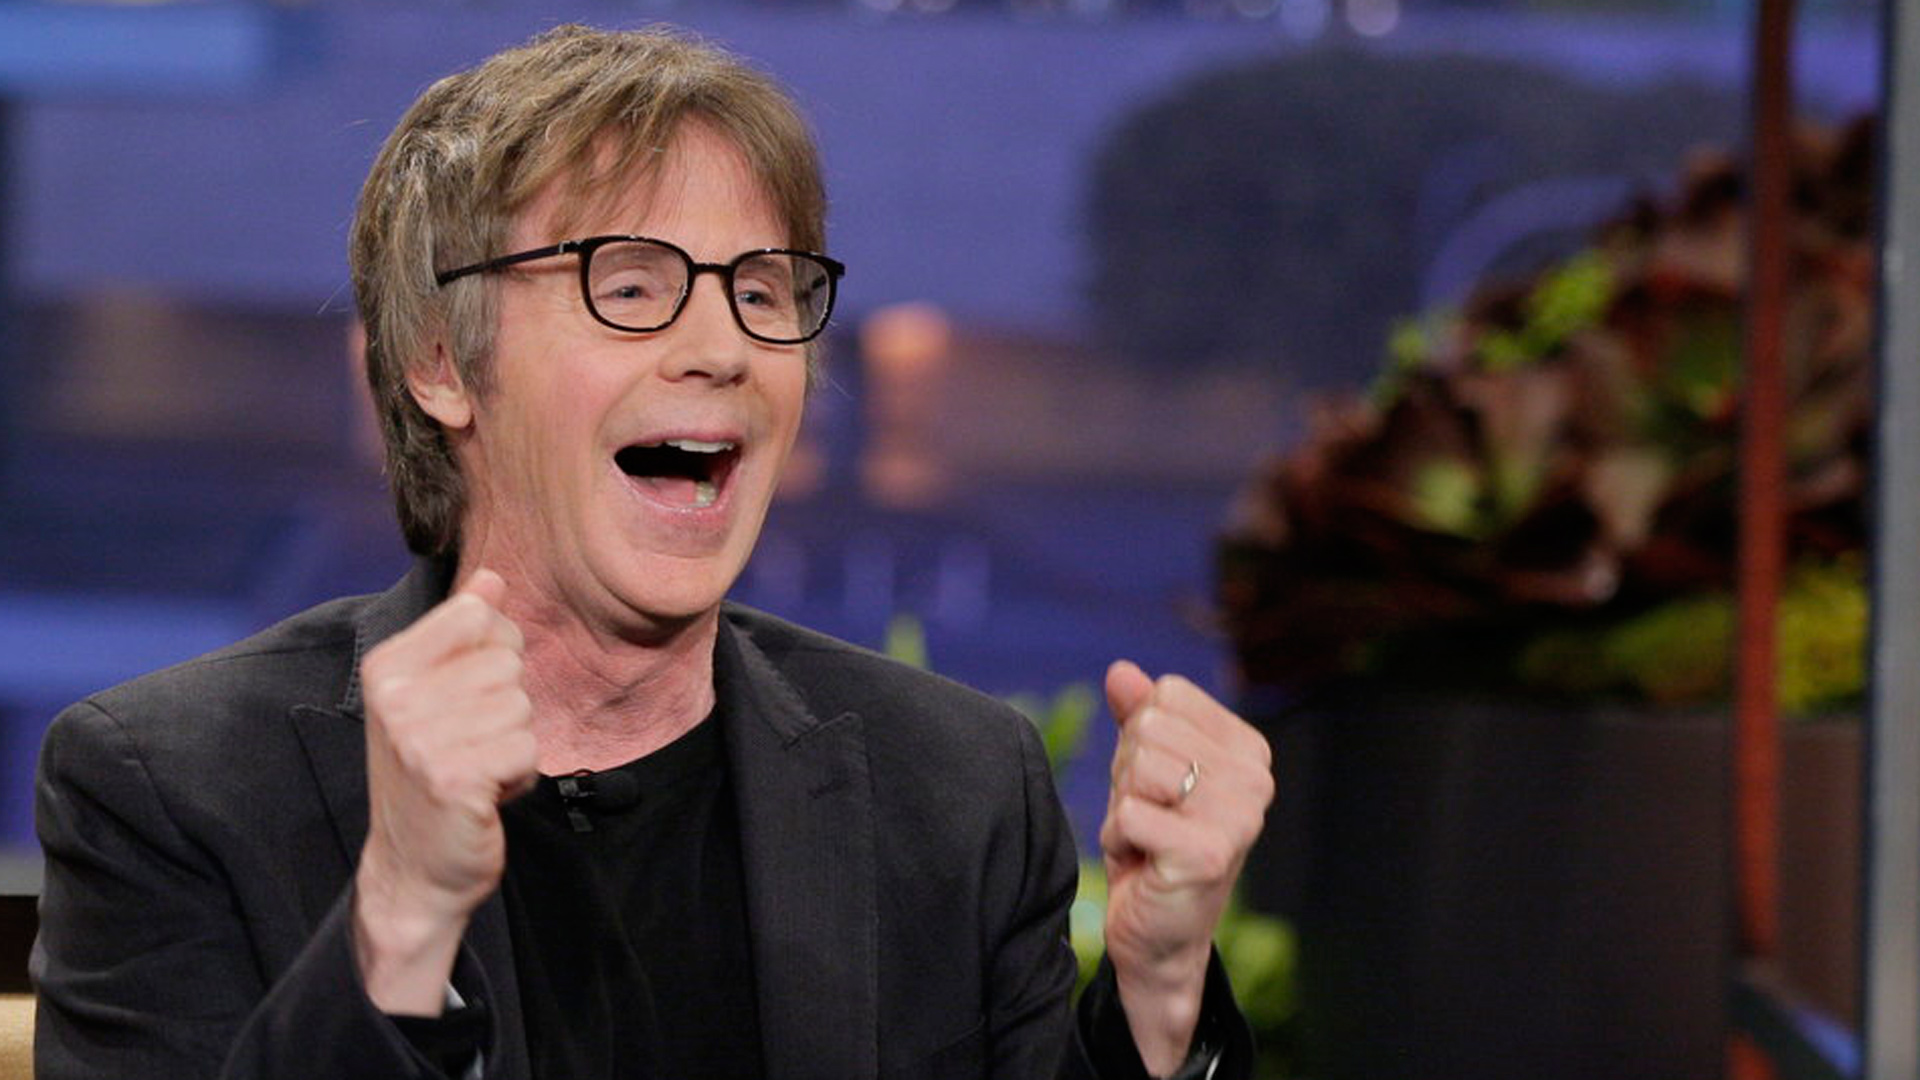 Dana Carvey, Magic Johnson, with musical guest A Great Big World